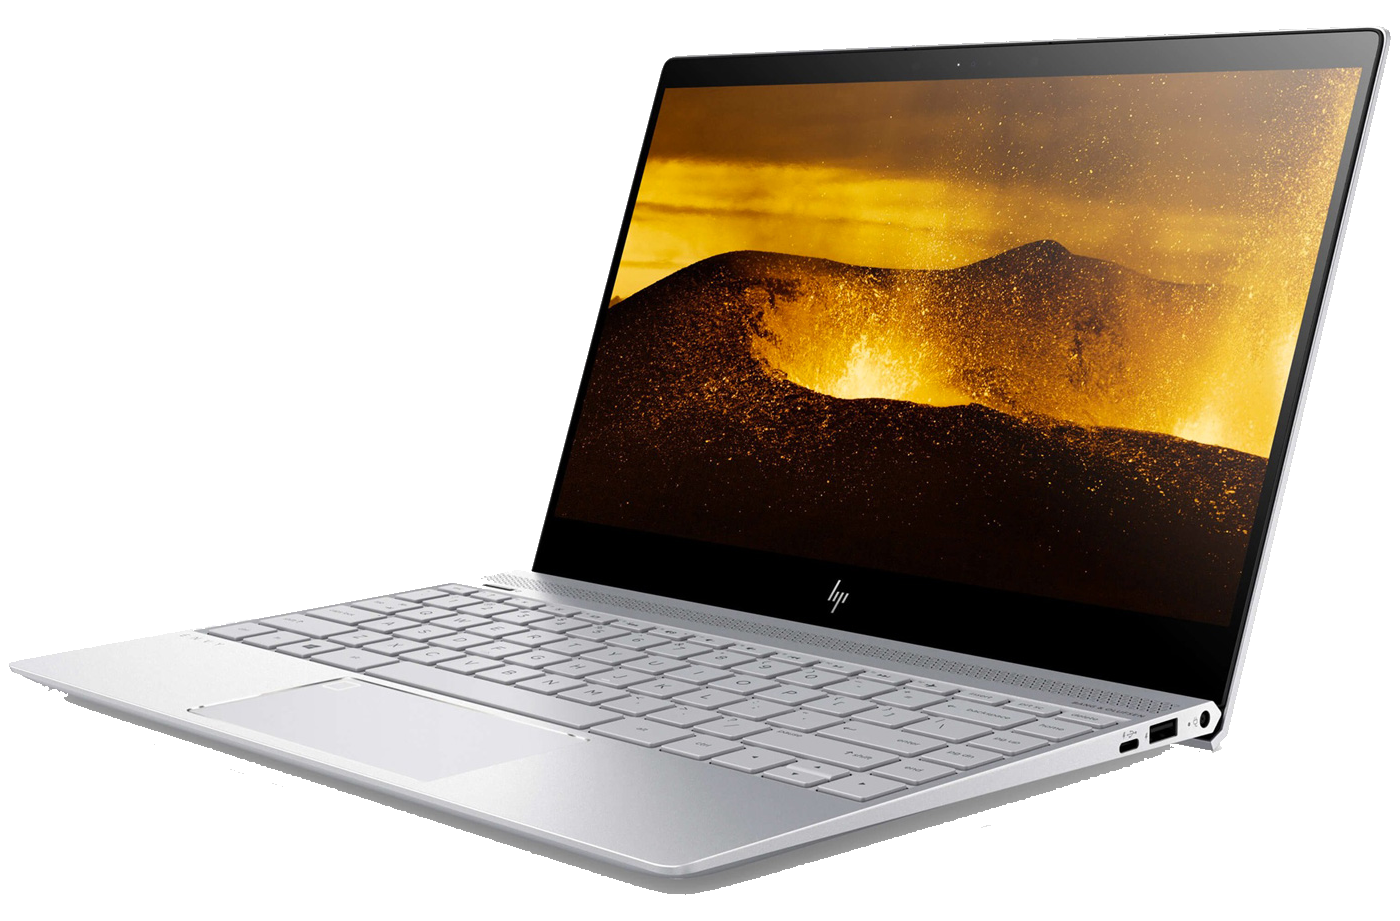 HP Laptop 13-ad113nf